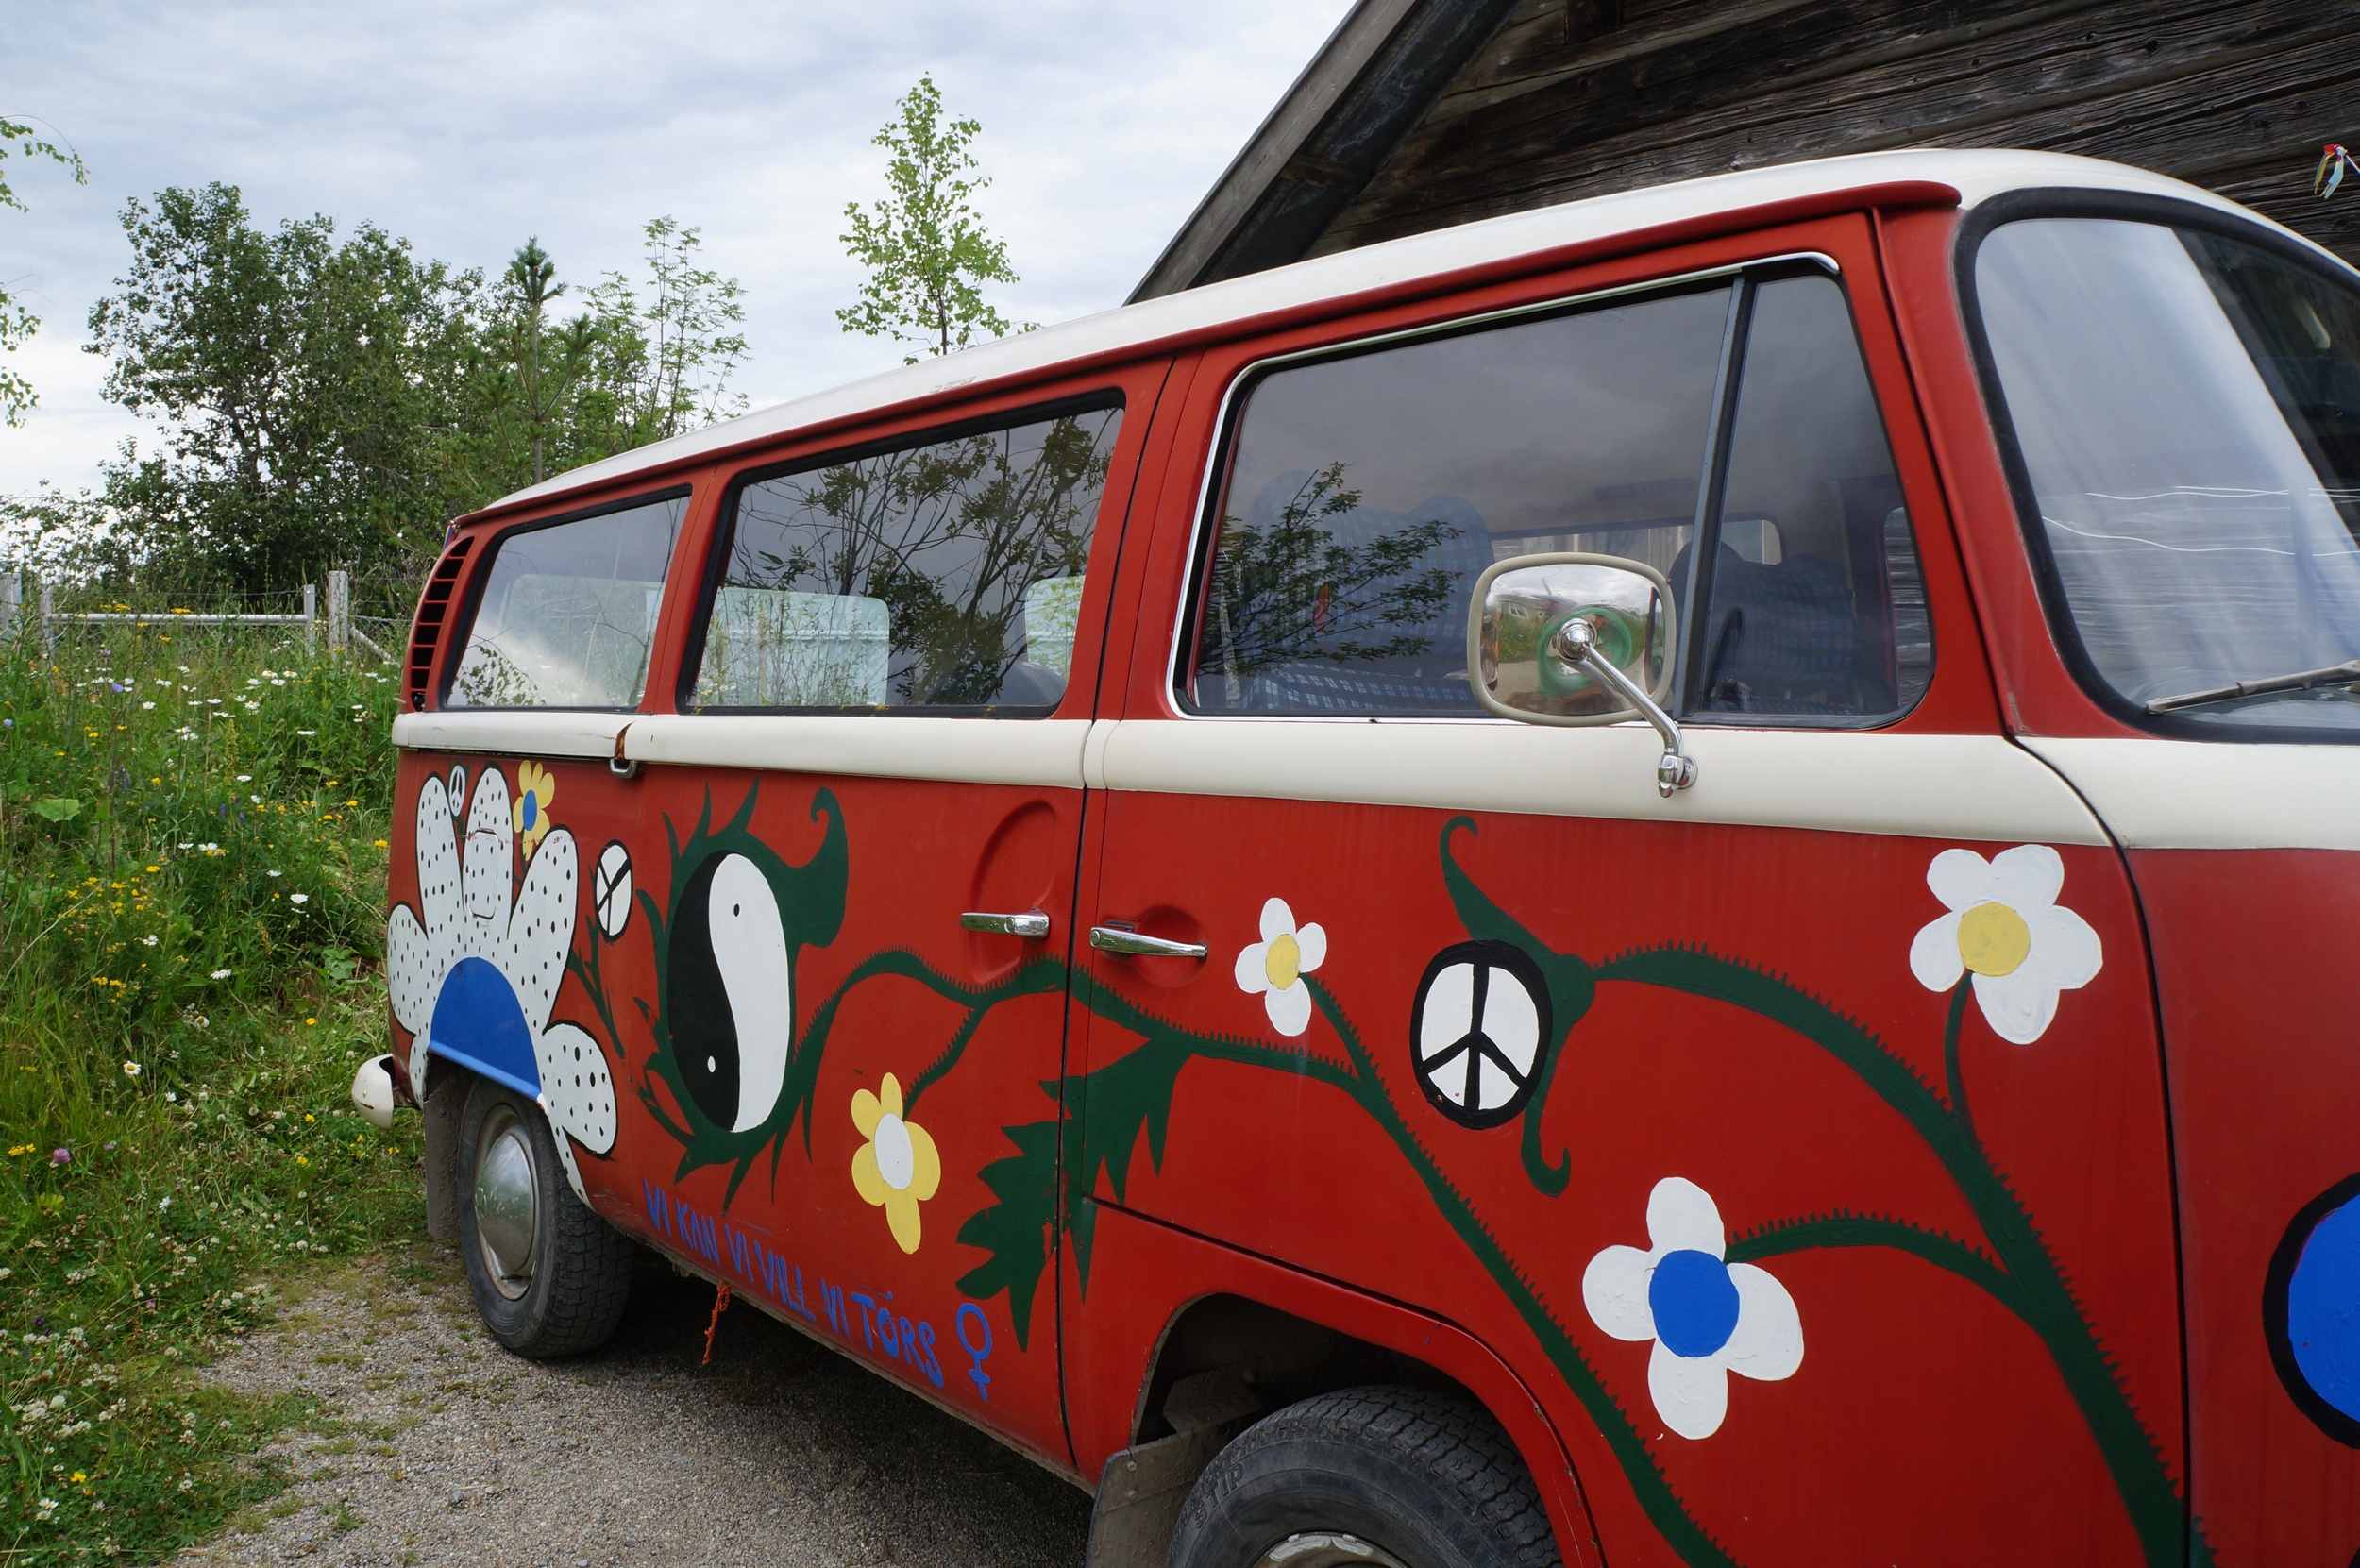 Flower Power and Peace Bus from 1975, Jamtli Sweden